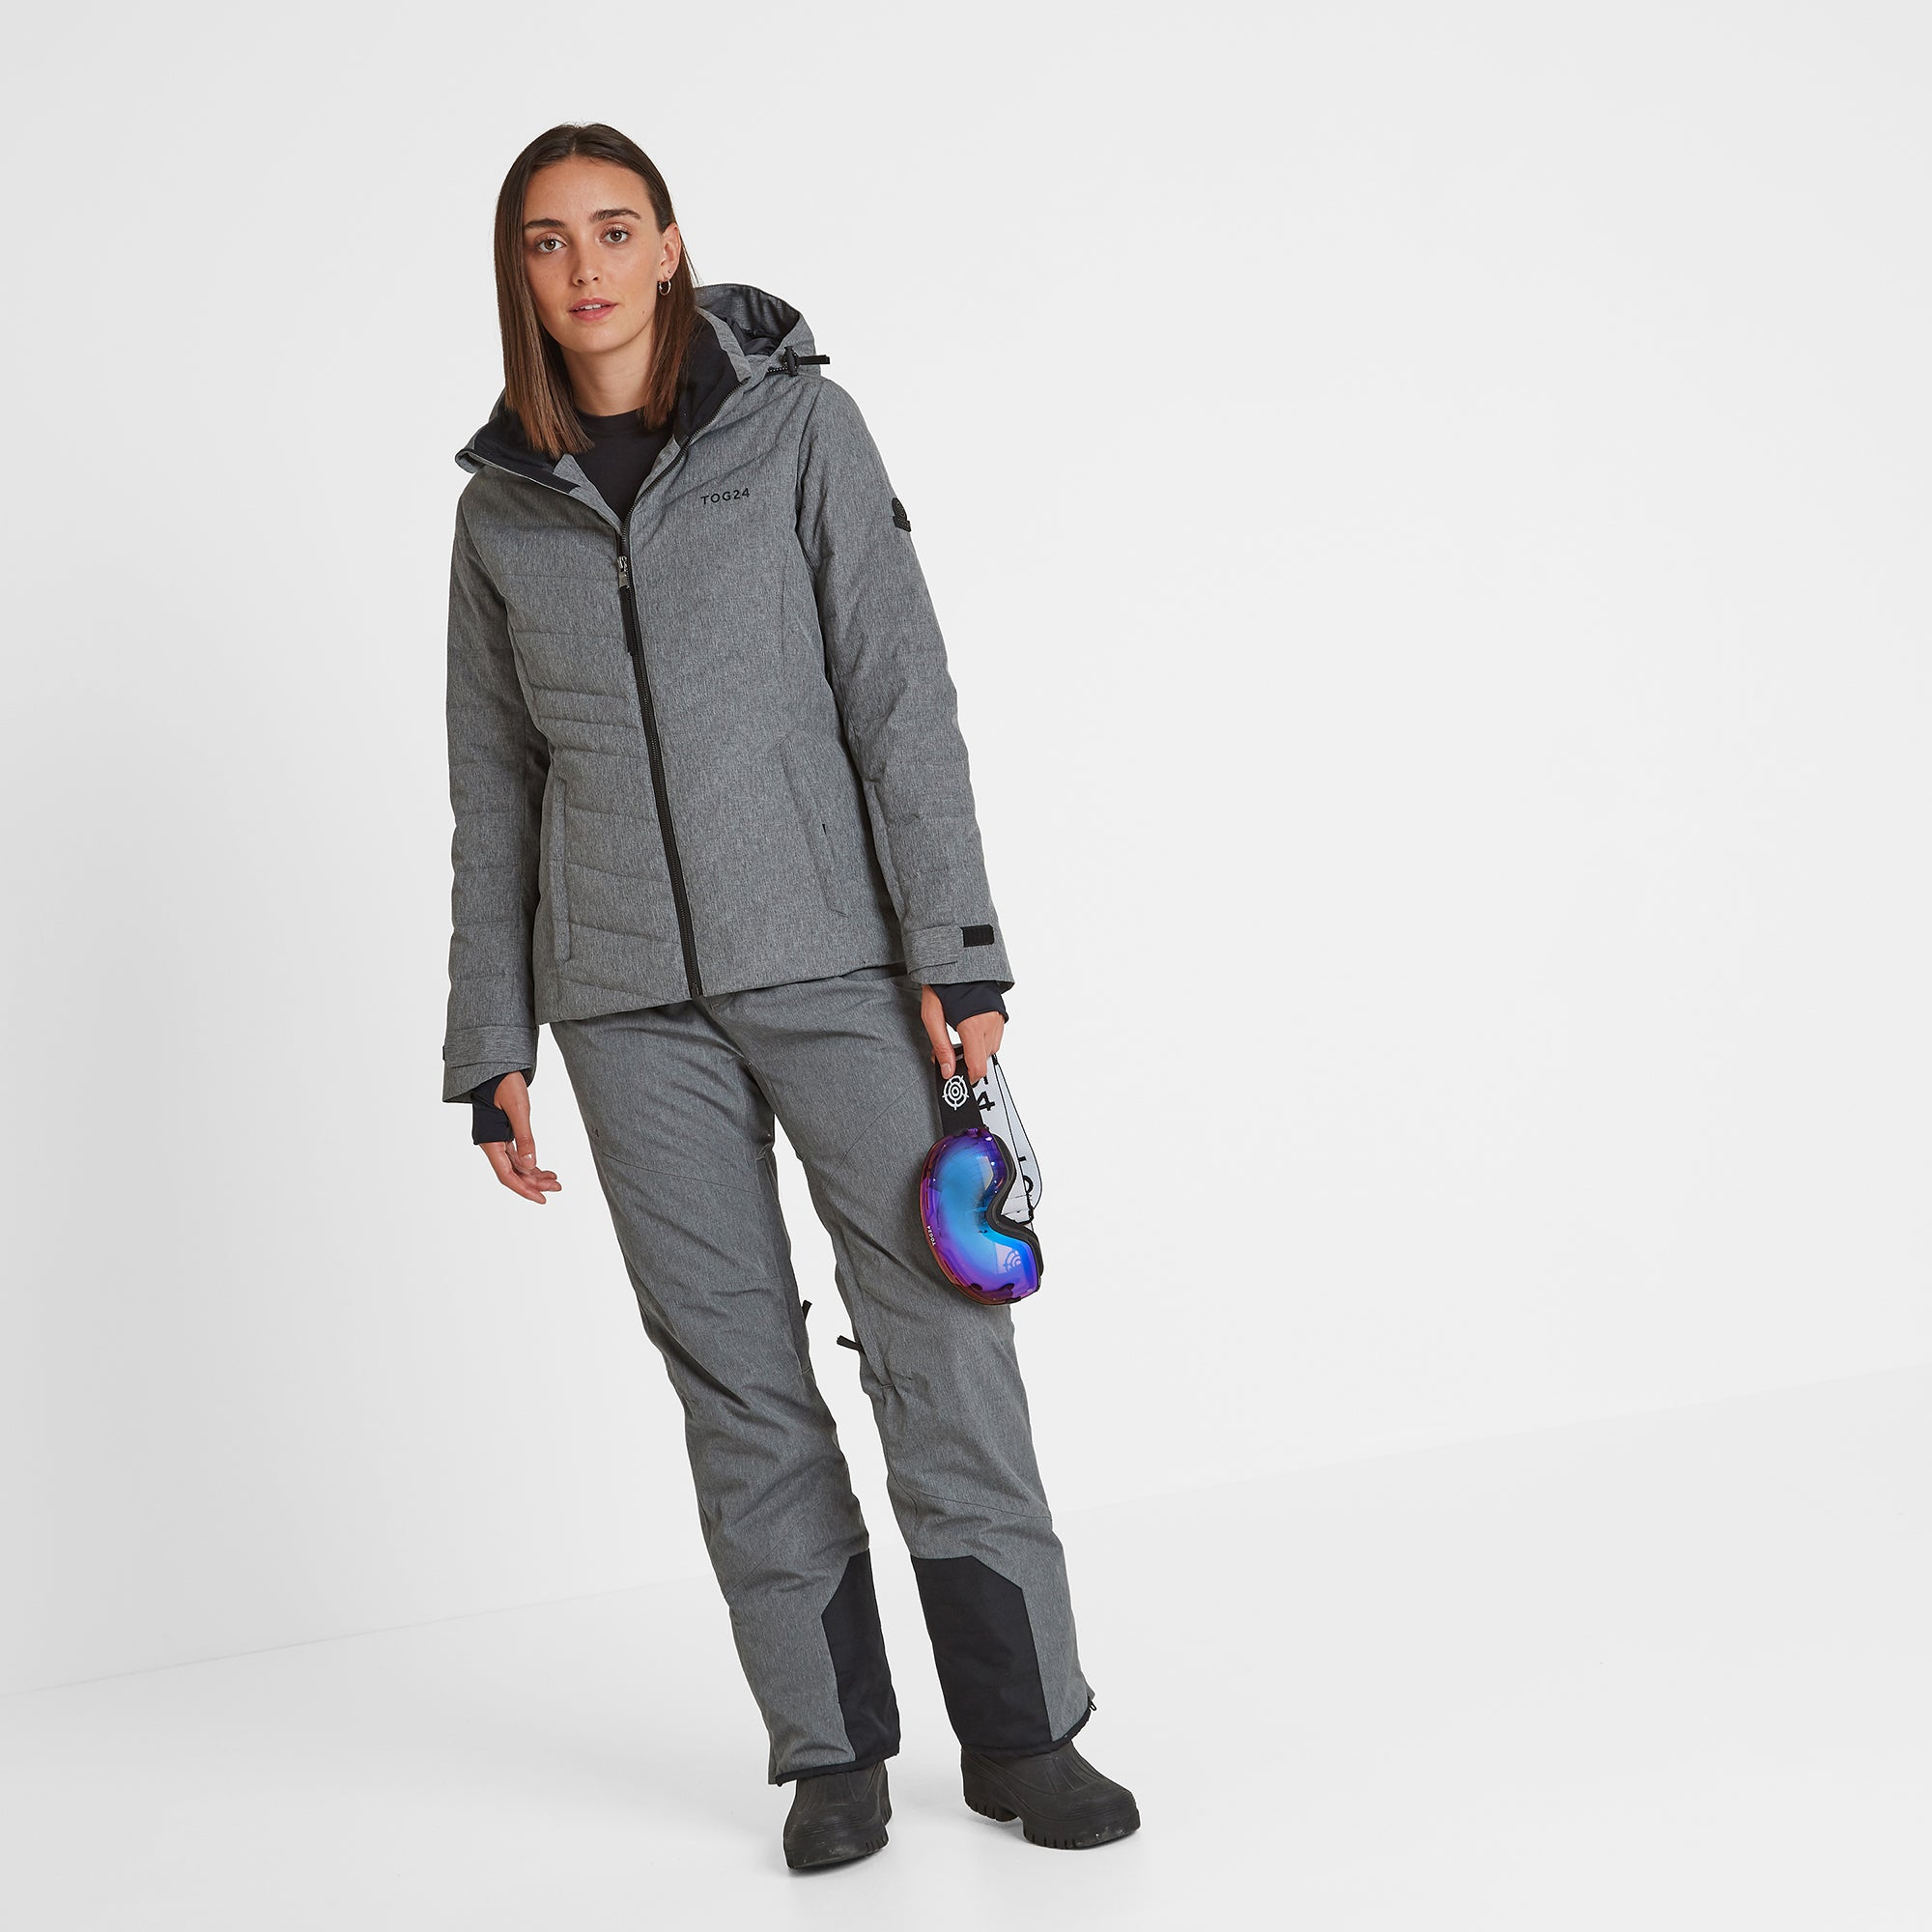 Shaw Womens Down Ski Jacket - Grey Marl